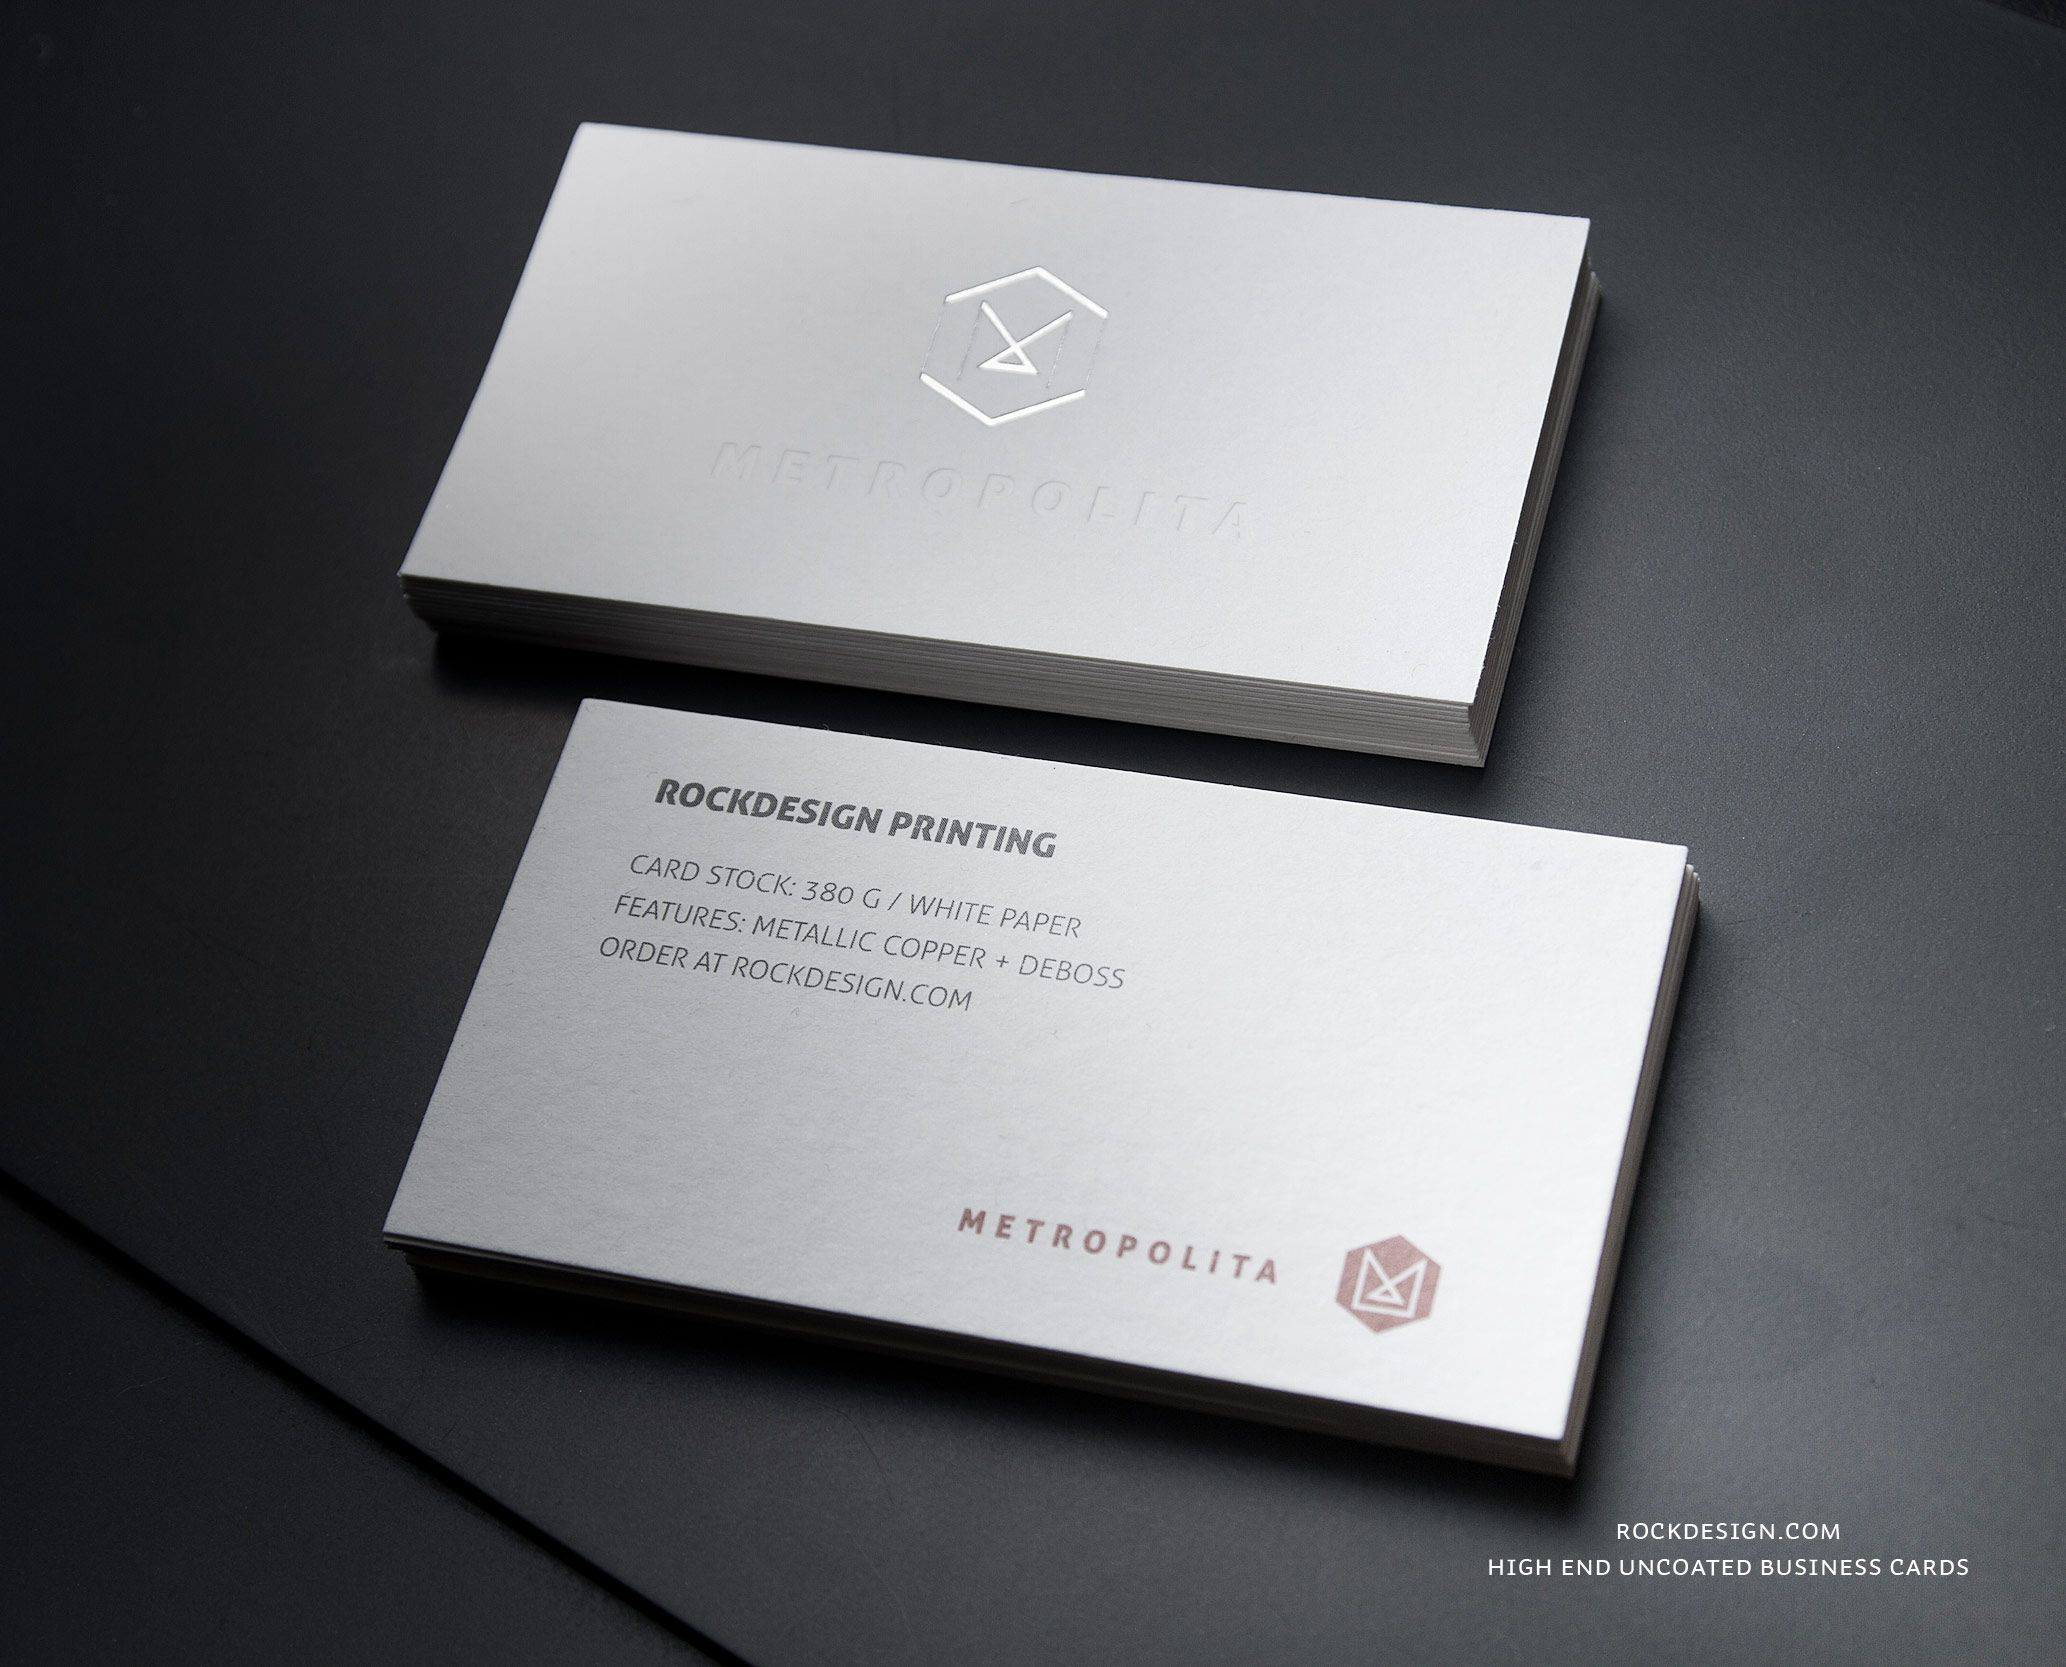 Rockdesign high end business cards premium white uncoated rockdesign high end business cards premium white uncoated stock reheart